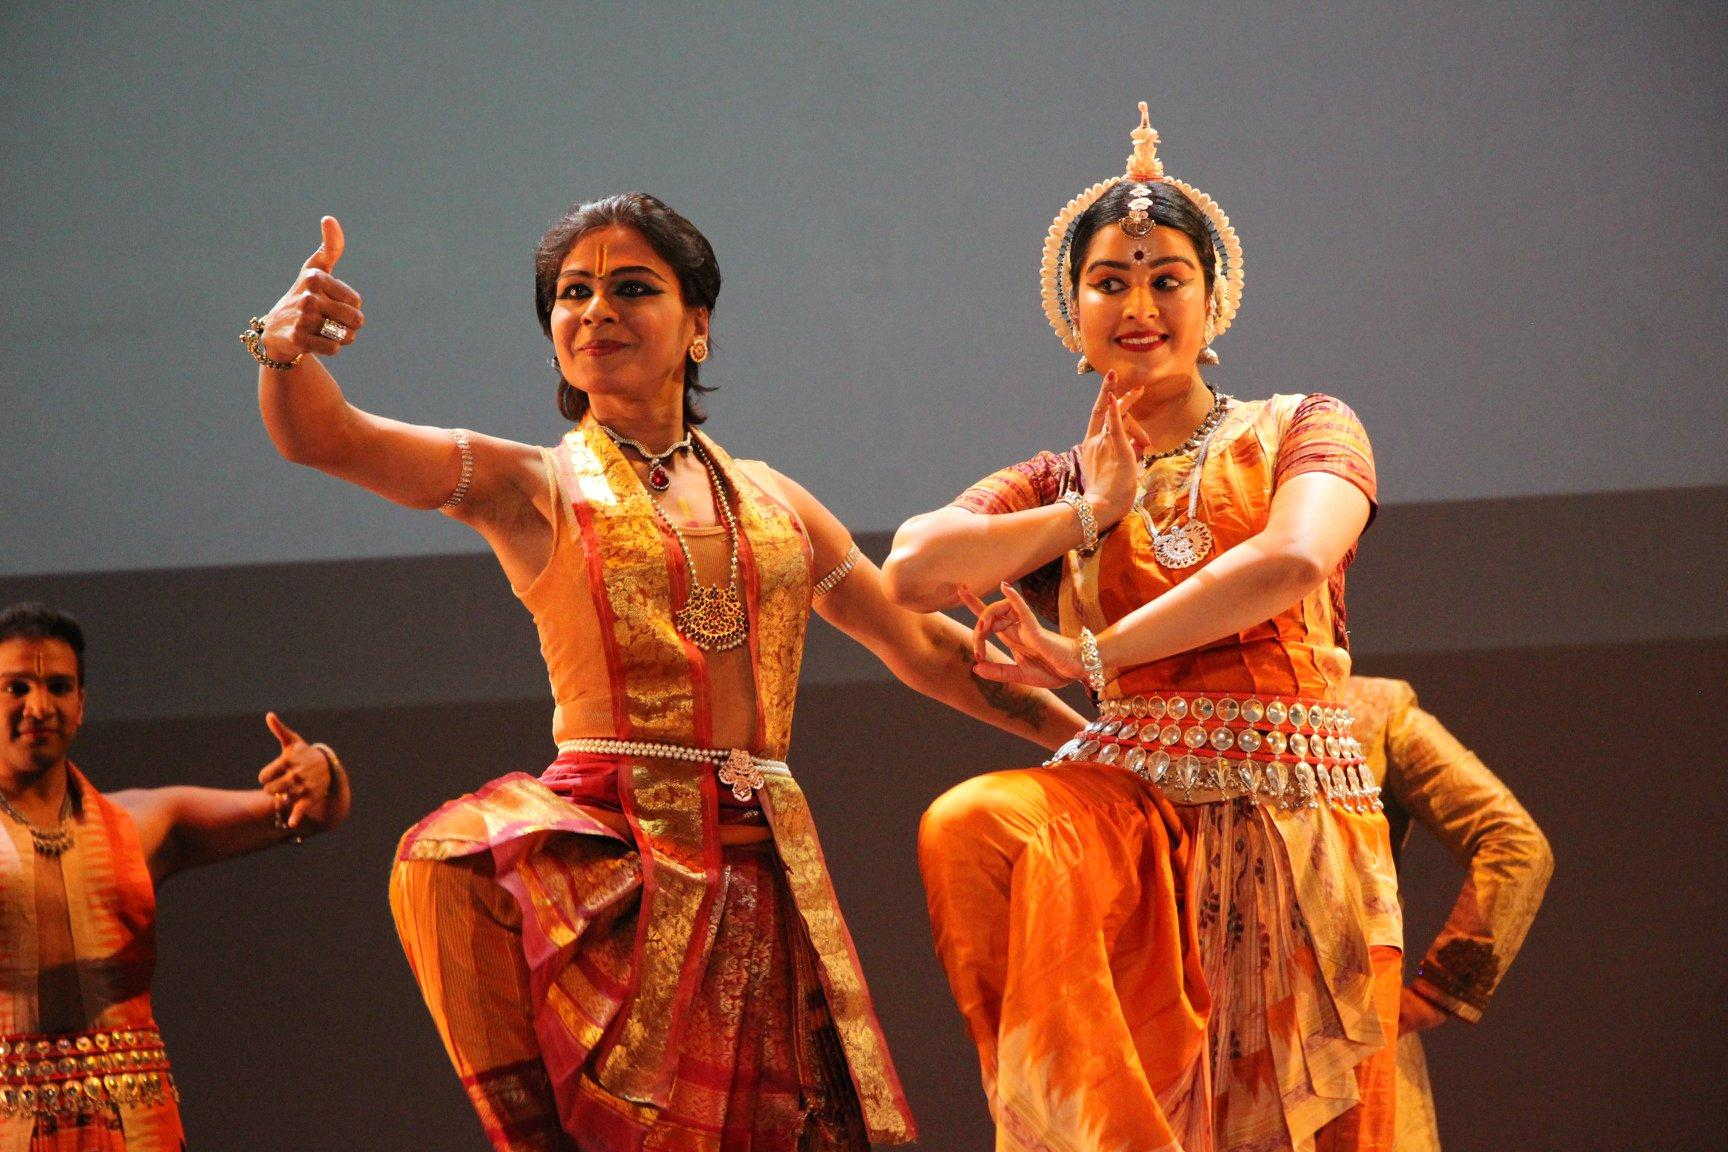 Laksha Dantran and Misha Talapatra perform. (Photo by Monika Bahroos)